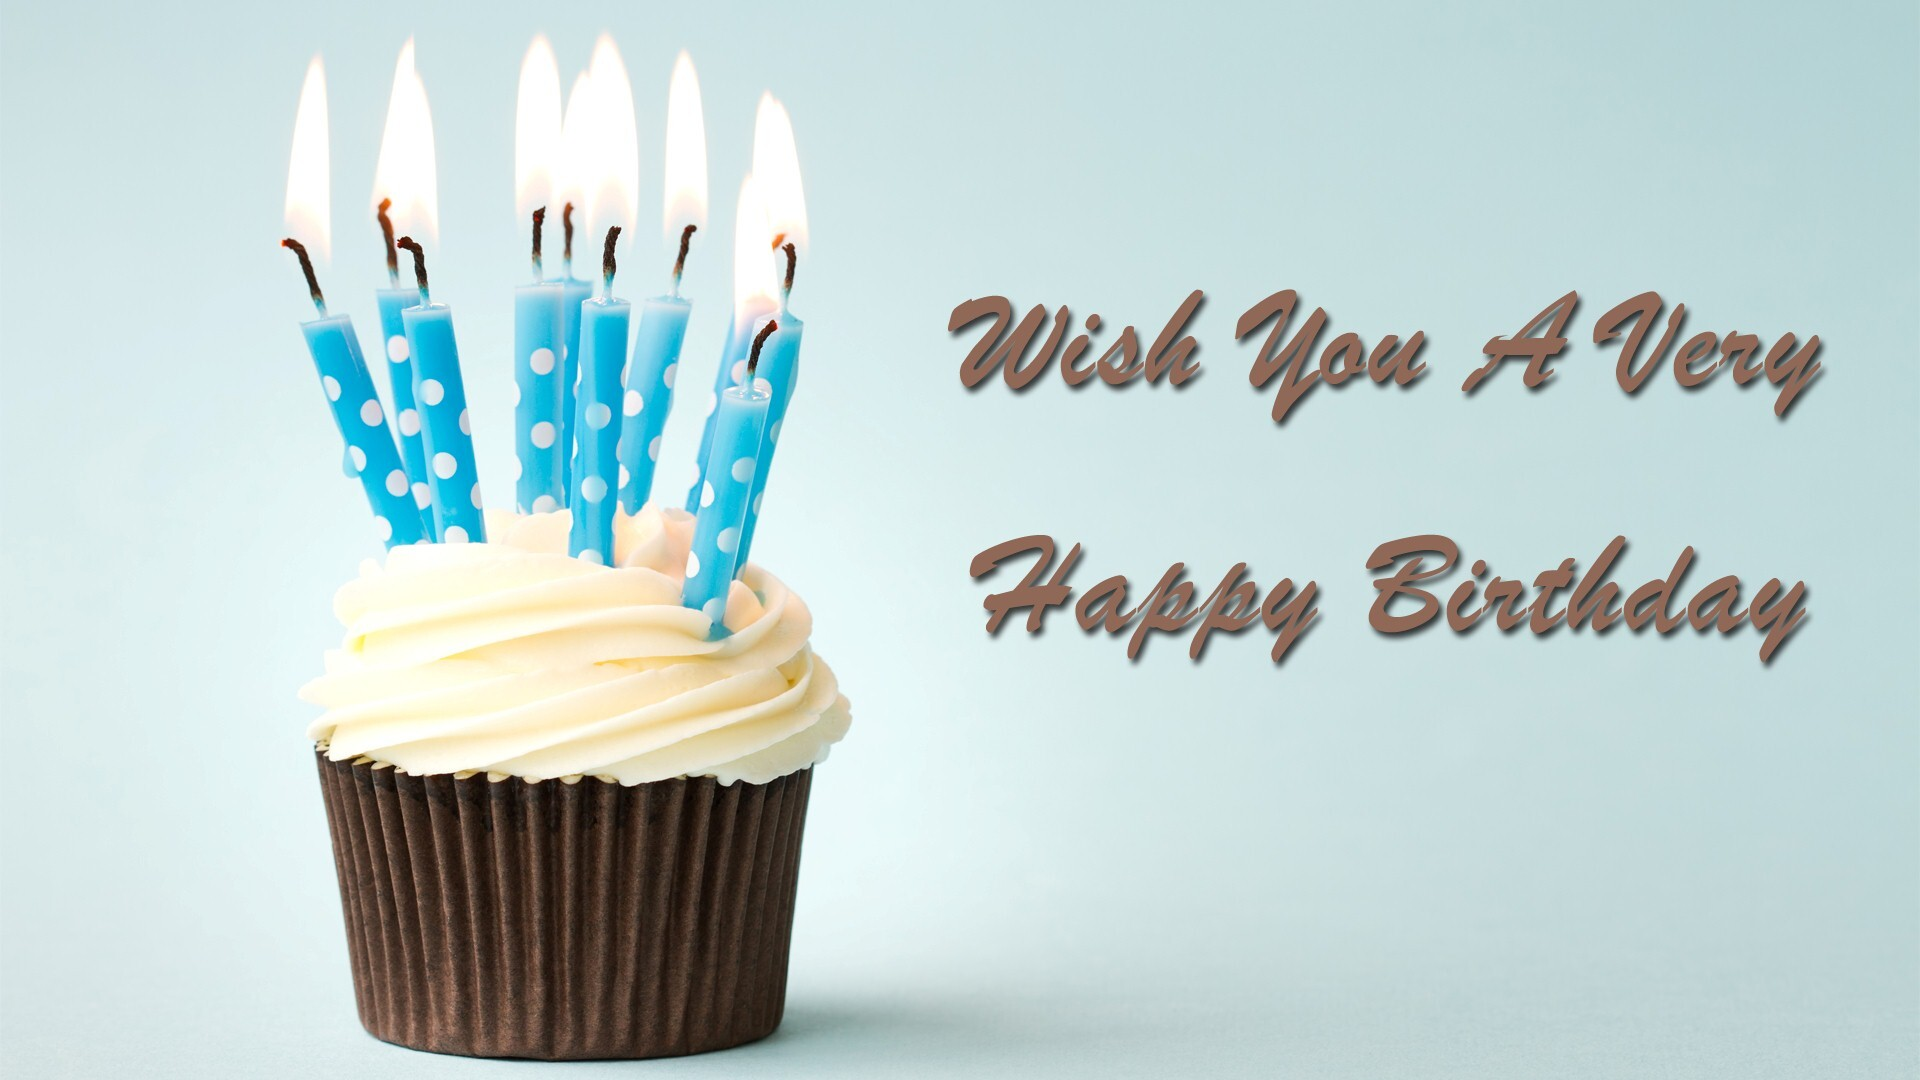 Wish You A Very Happy Birthday HD Wallpapers